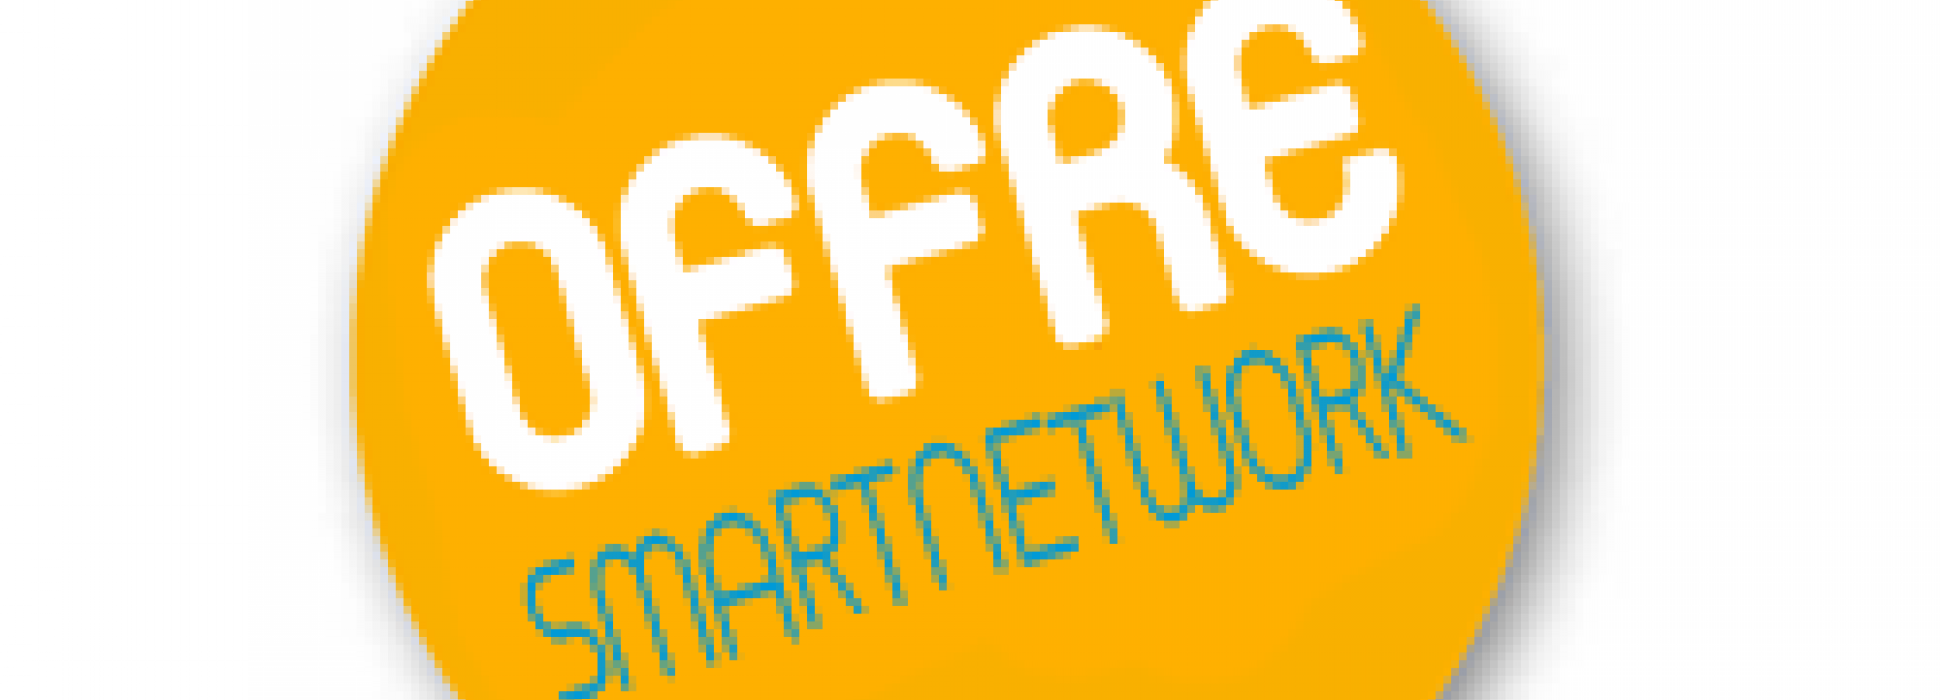 Discover the Smartnetwork's offers